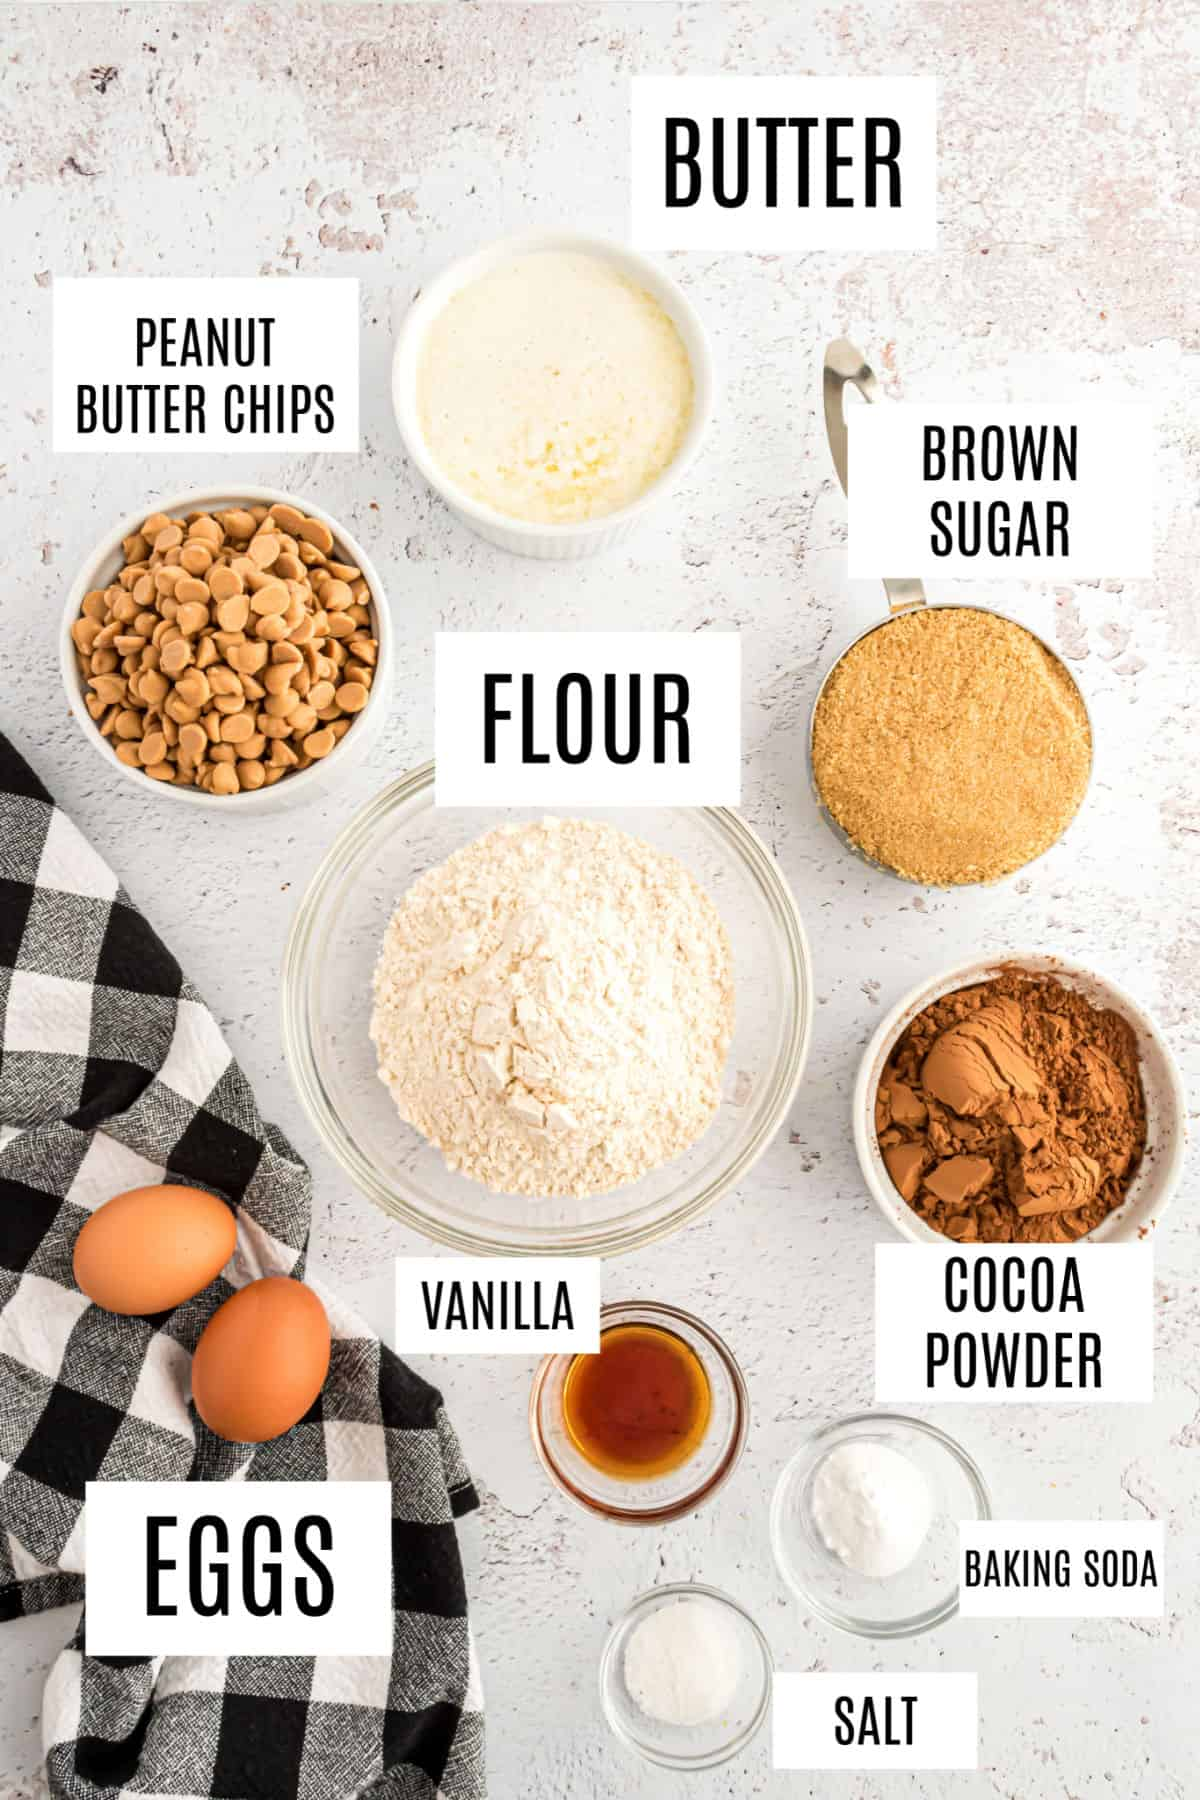 Ingredients needed for chocolate peanut butter chip cookies.